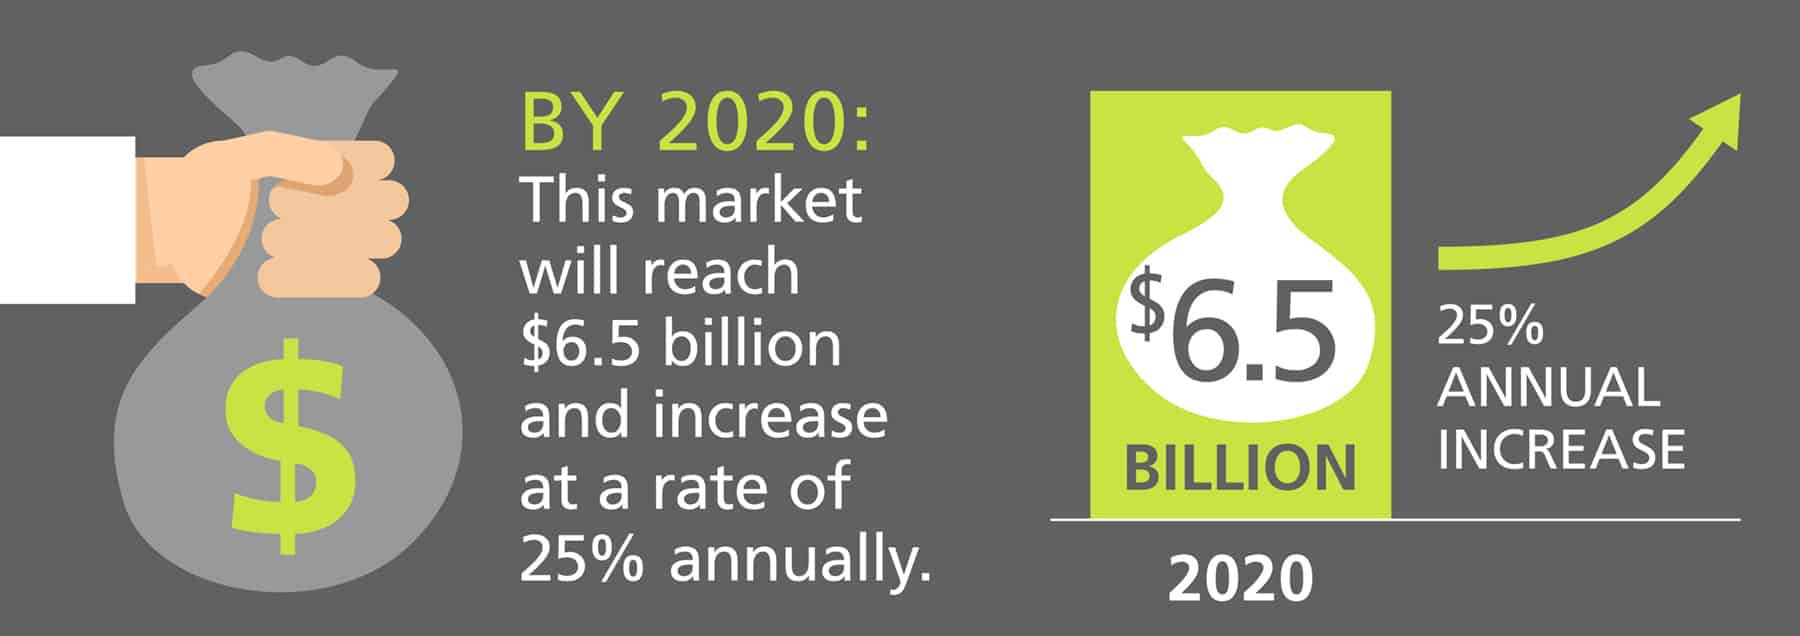 Expect a 25% annual increase in the text analytics market by 2020.